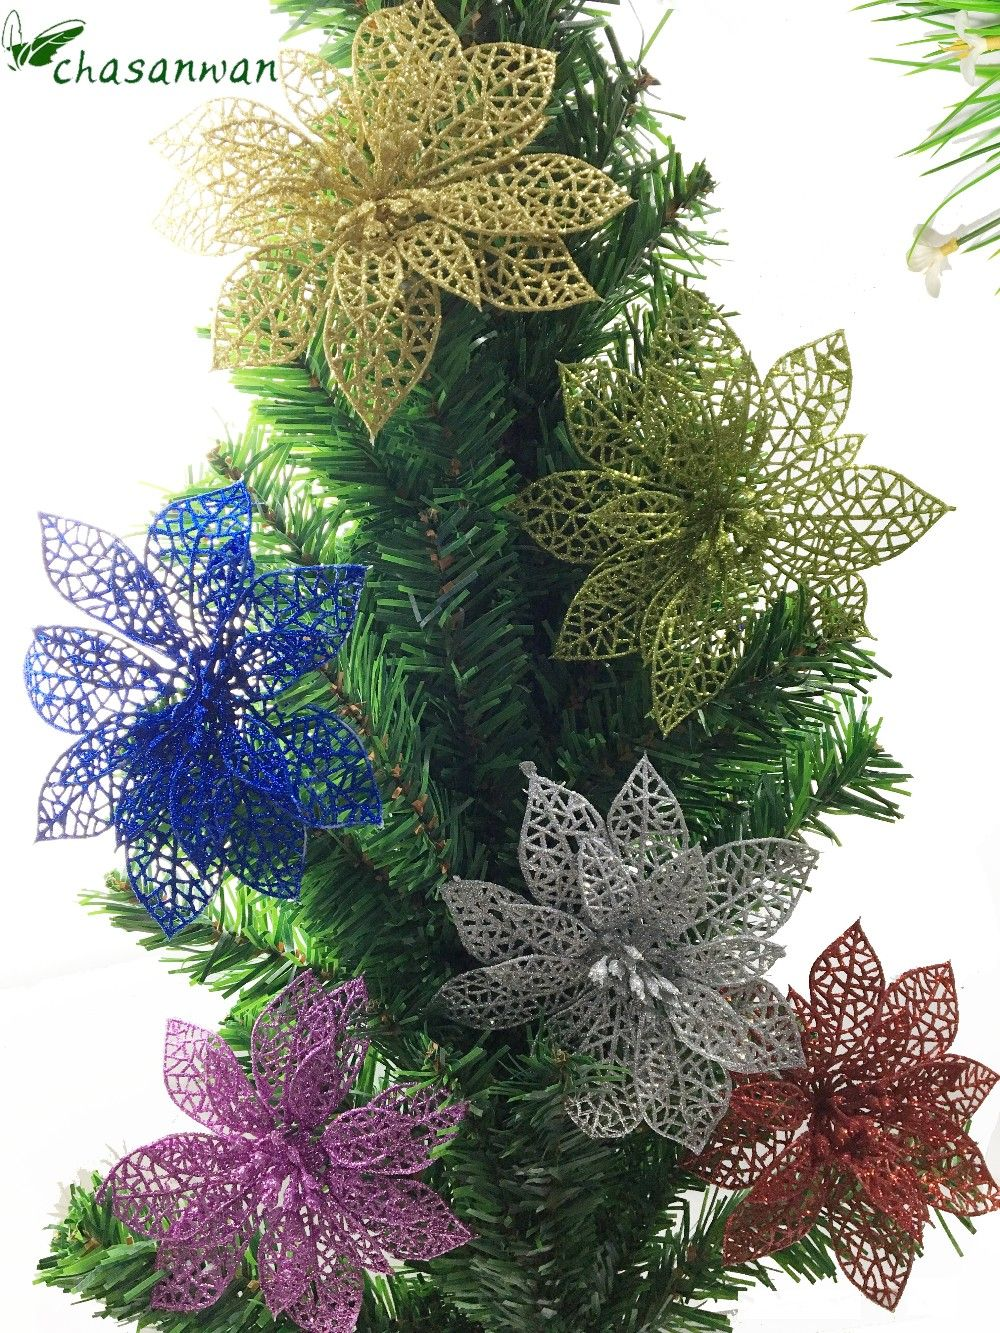 10pcs Artificial Flowers flowers for decoration Wedding Decoration mariage New Year home decoration accessories valentines day.Q   http://www.slovenskyali.sk/products/10pcs-artificial-flowers-flowers-for-decoration-wedding-decoration-mariage-new-year-home-decoration-accessories-valentines-day-q/   USD 3.20/pieceUSD 3.72/pieceUSD 8.88/pieceUSD 9.90/pieceUSD 5.68/pieceUSD 18.88/pieceUSD 3.96/pieceUSD 1.94-2.26/piece  Feature: Beautiful ornament hanging on the Christmas Tree